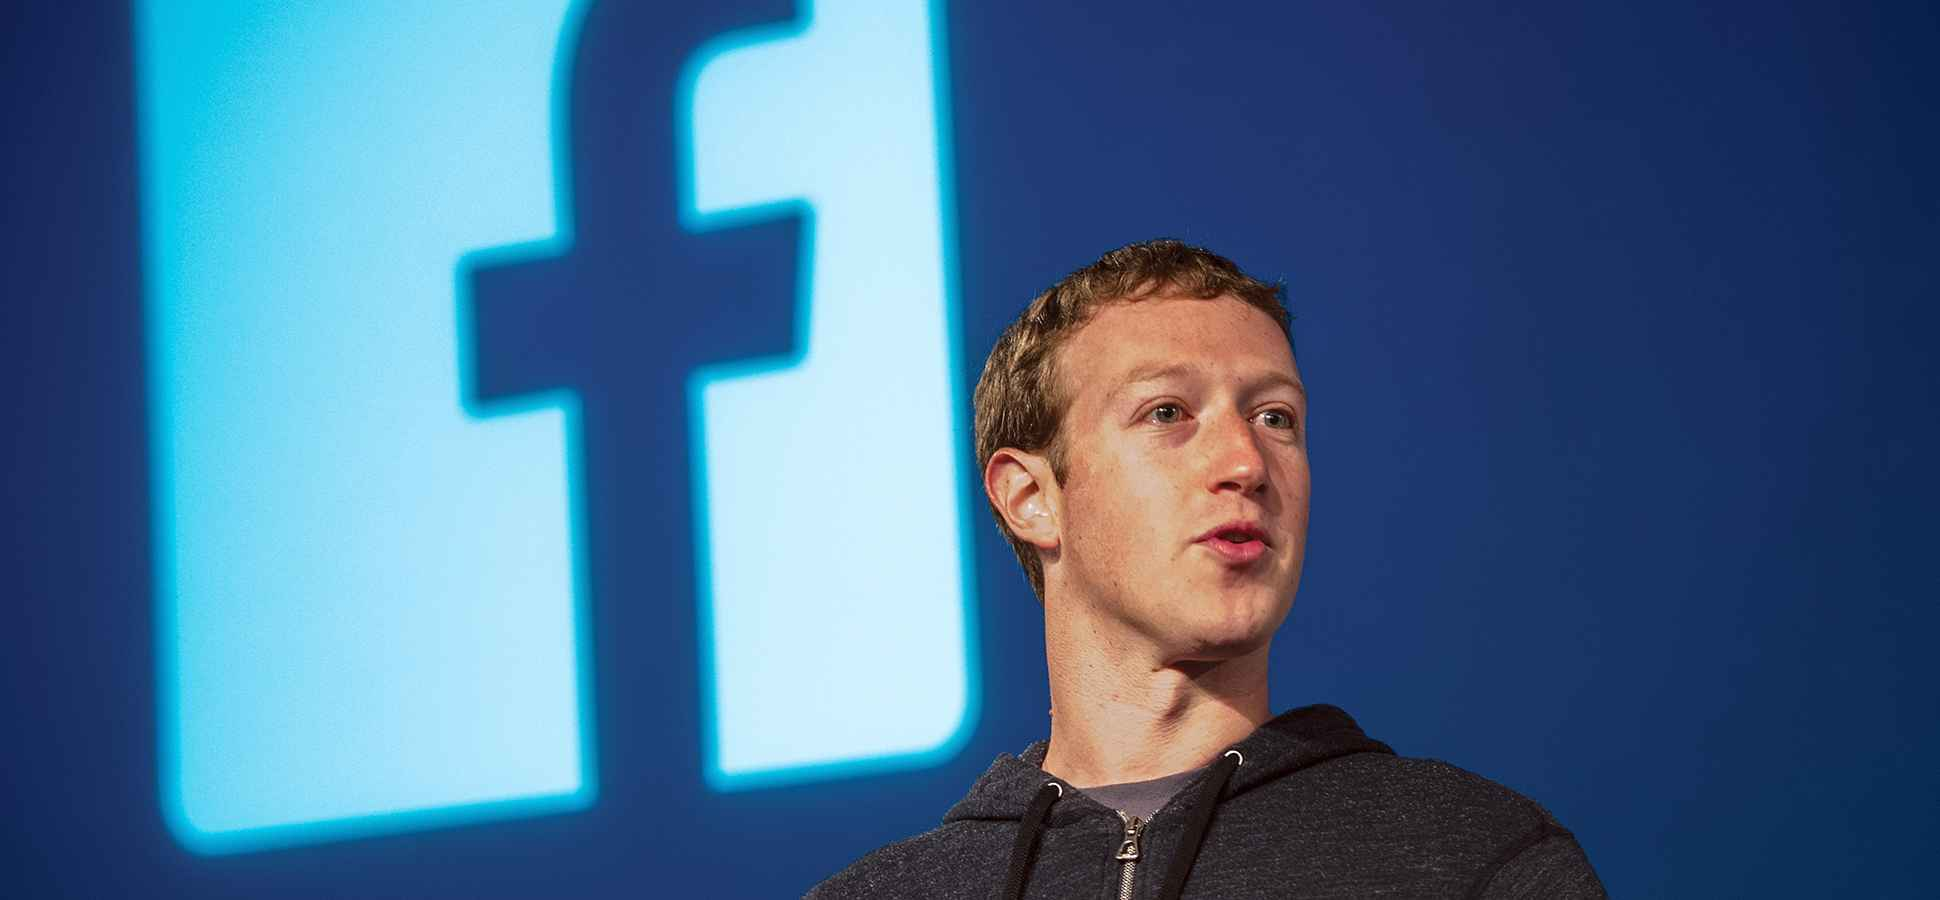 Three inspirational quotes by Mark Zuckerberg at Facebook F8 2016